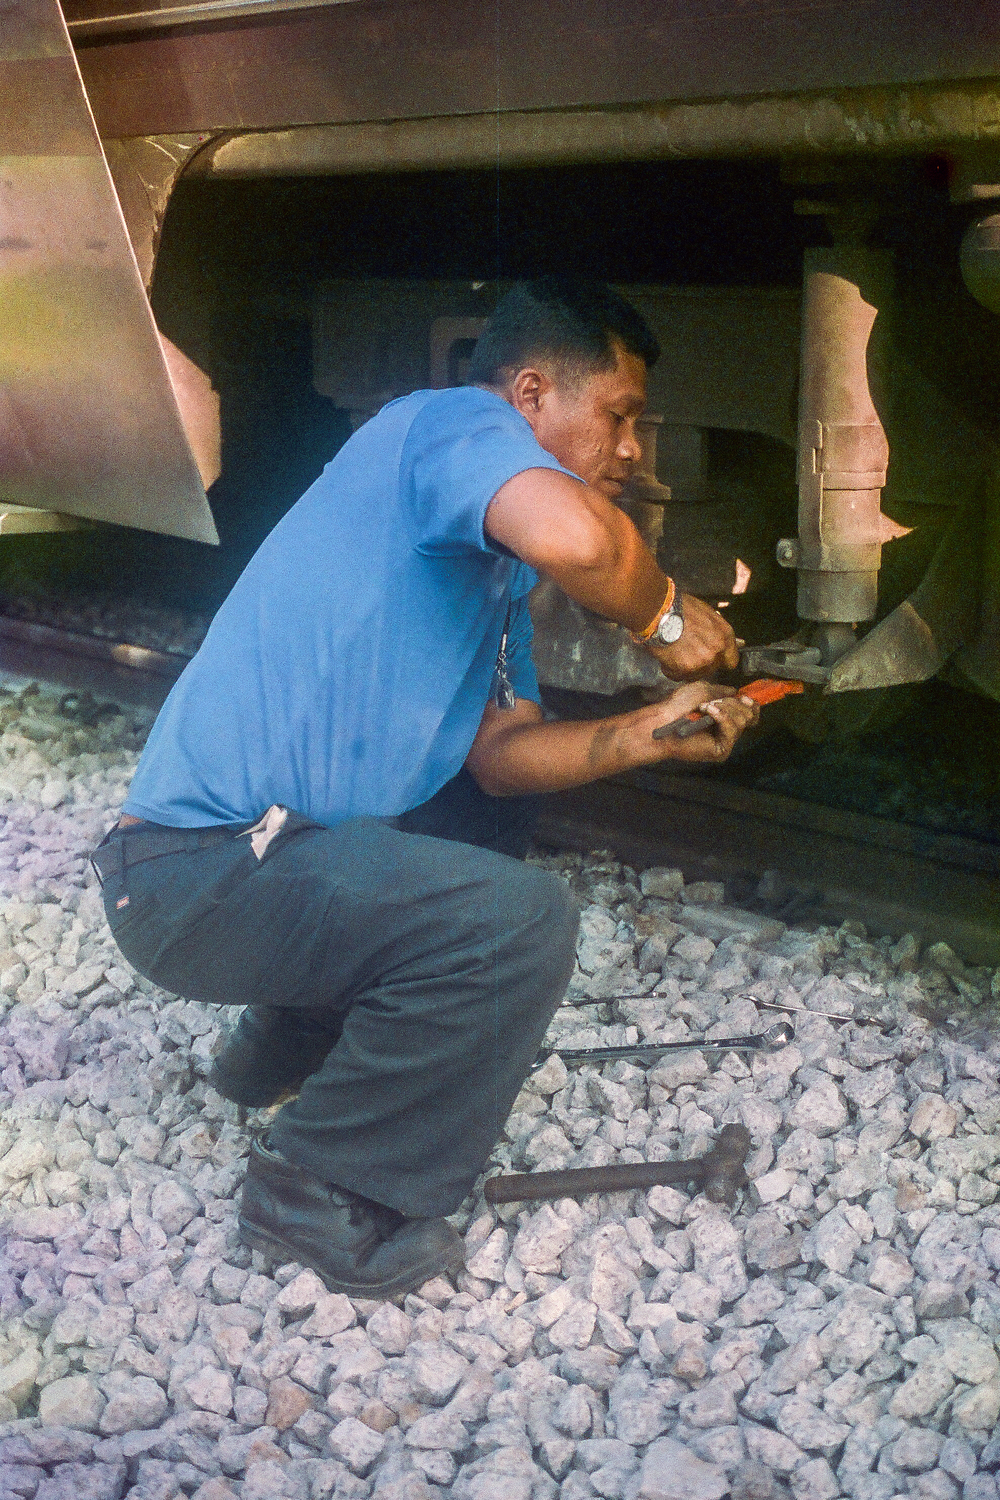 Conductor fixing the train on the Georgetown to Chumphon route.